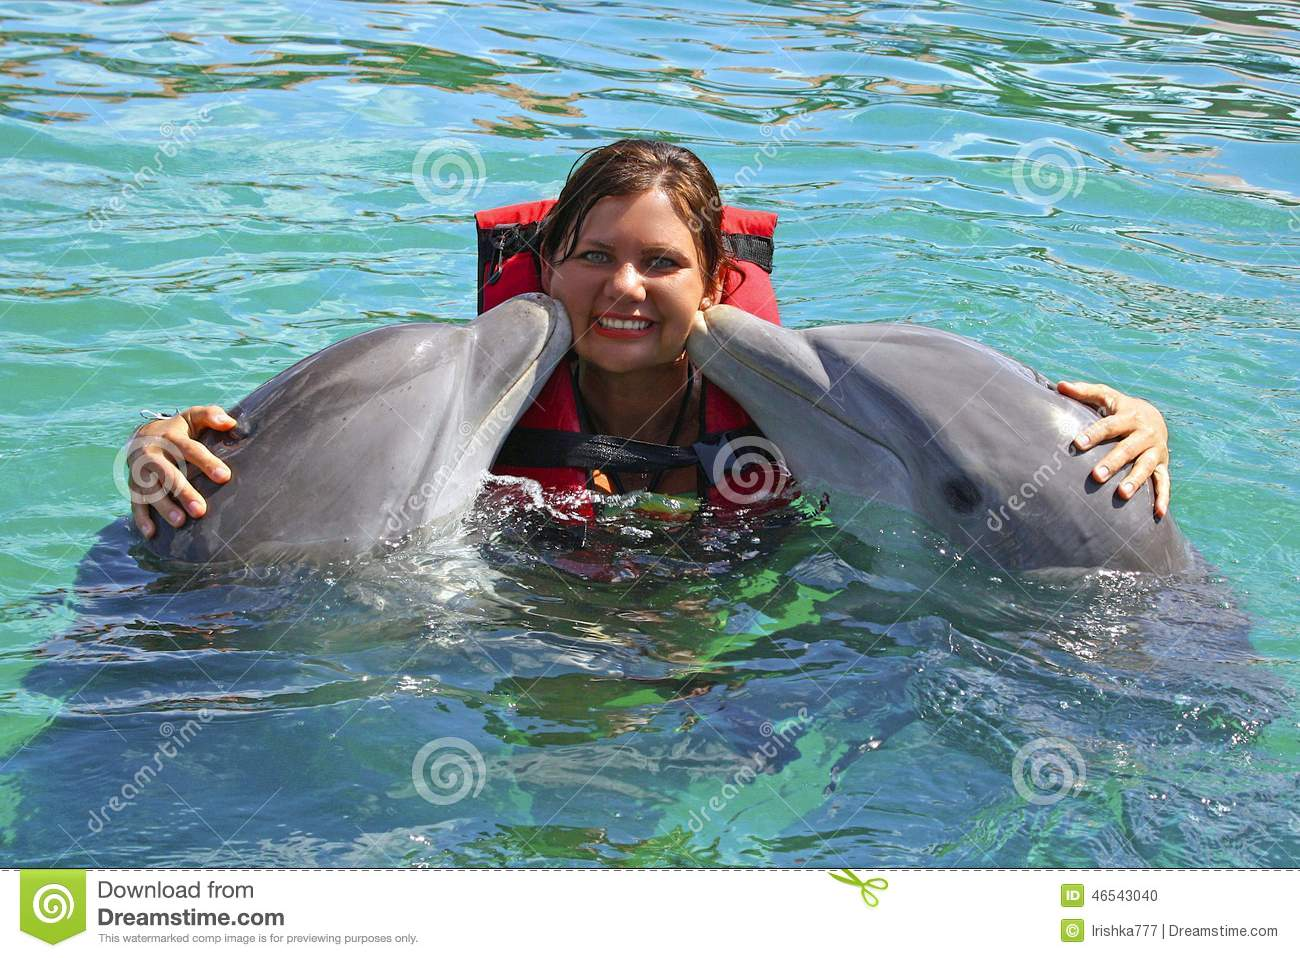 Dolphins Kissing Young Girl, Cuba Stock Photo - Image